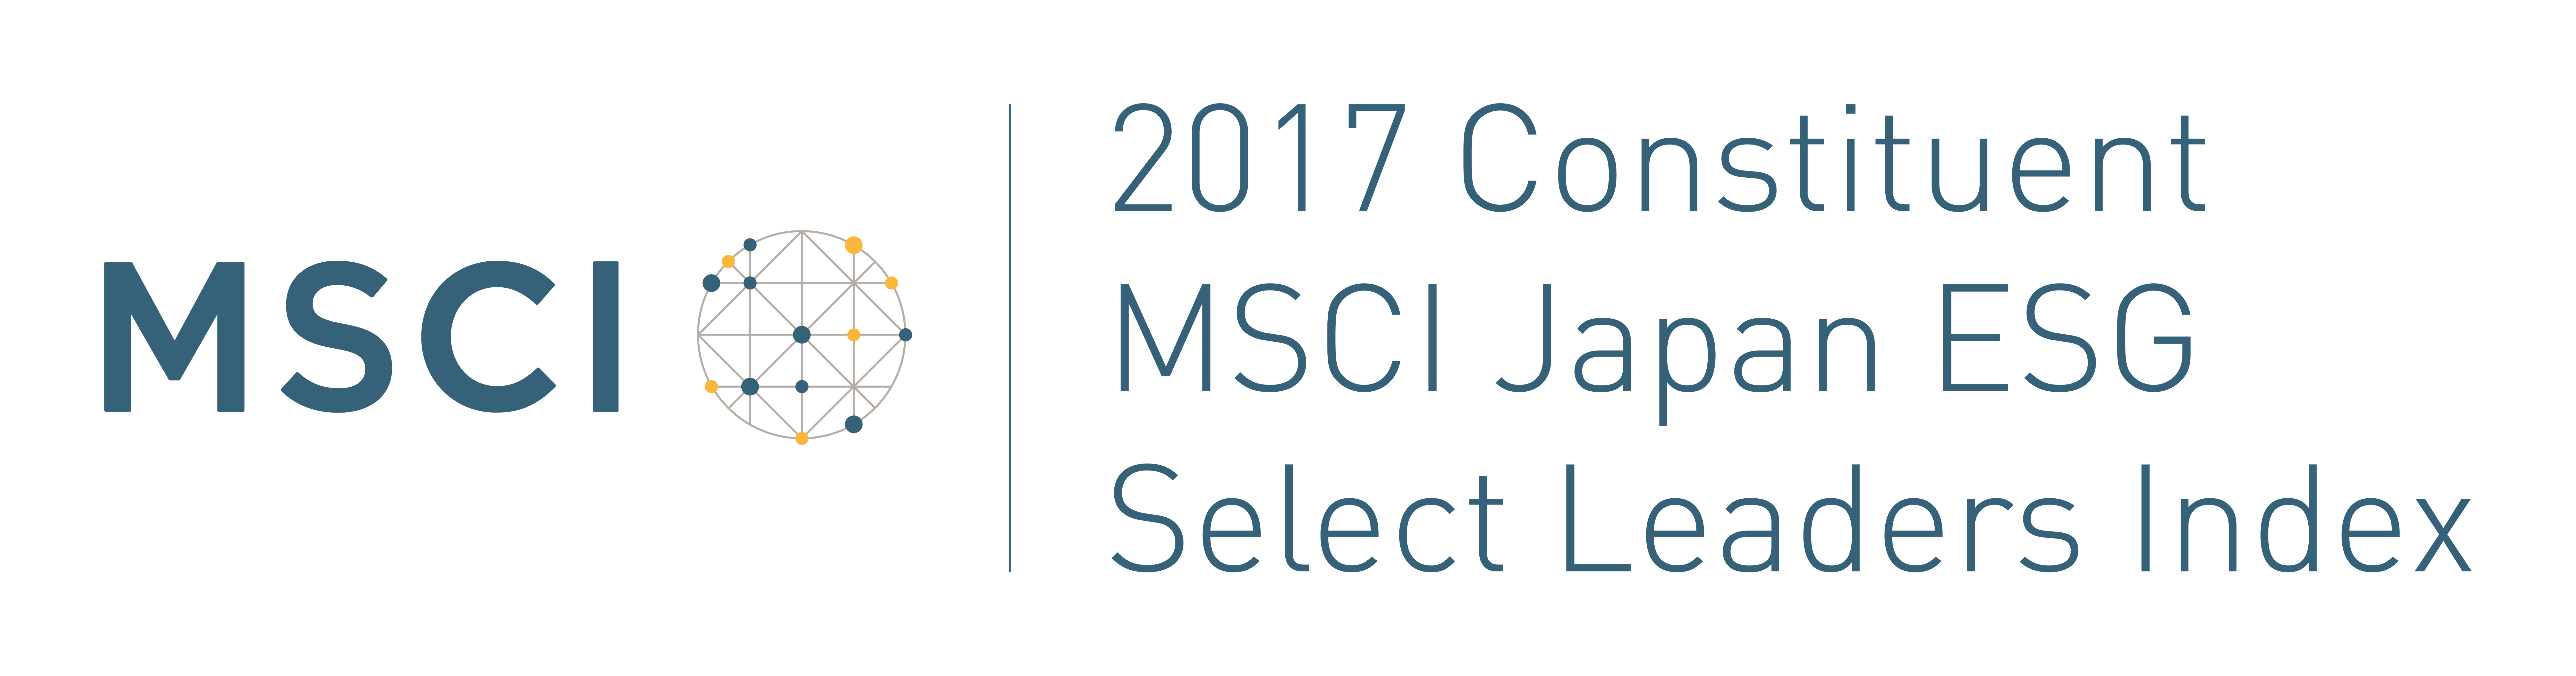 2017 Constituent MSCI Japan ESG Select Leaders Index